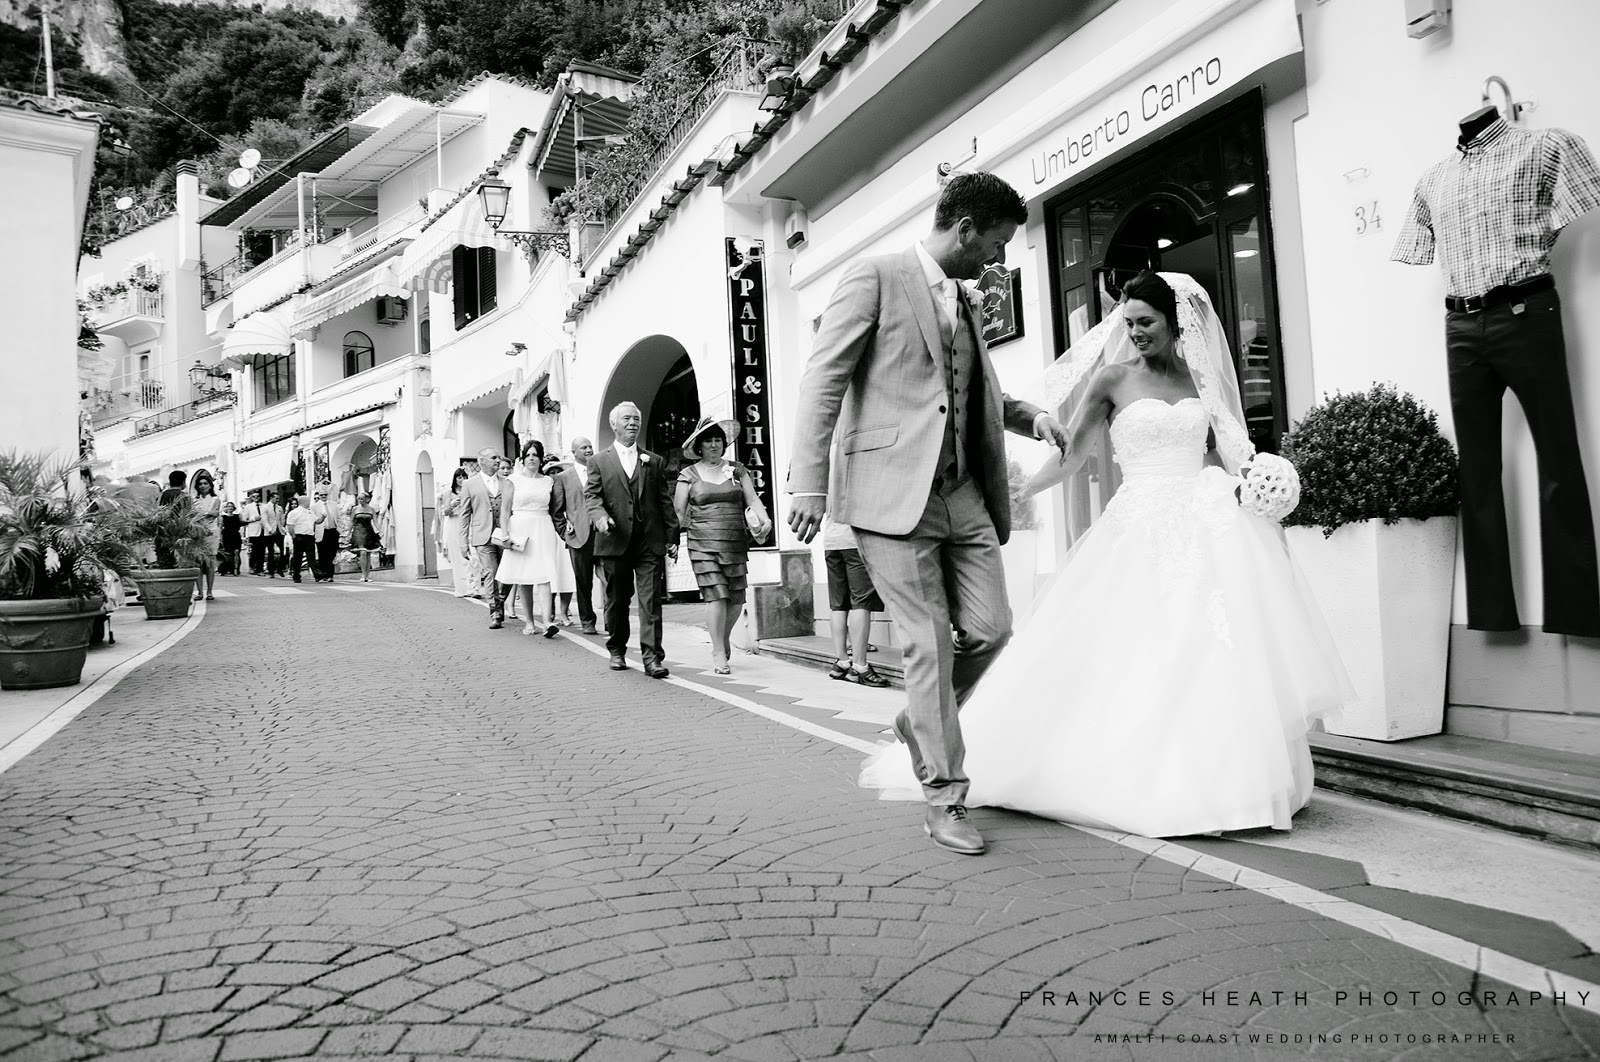 Wedding party walking in Positano Italy